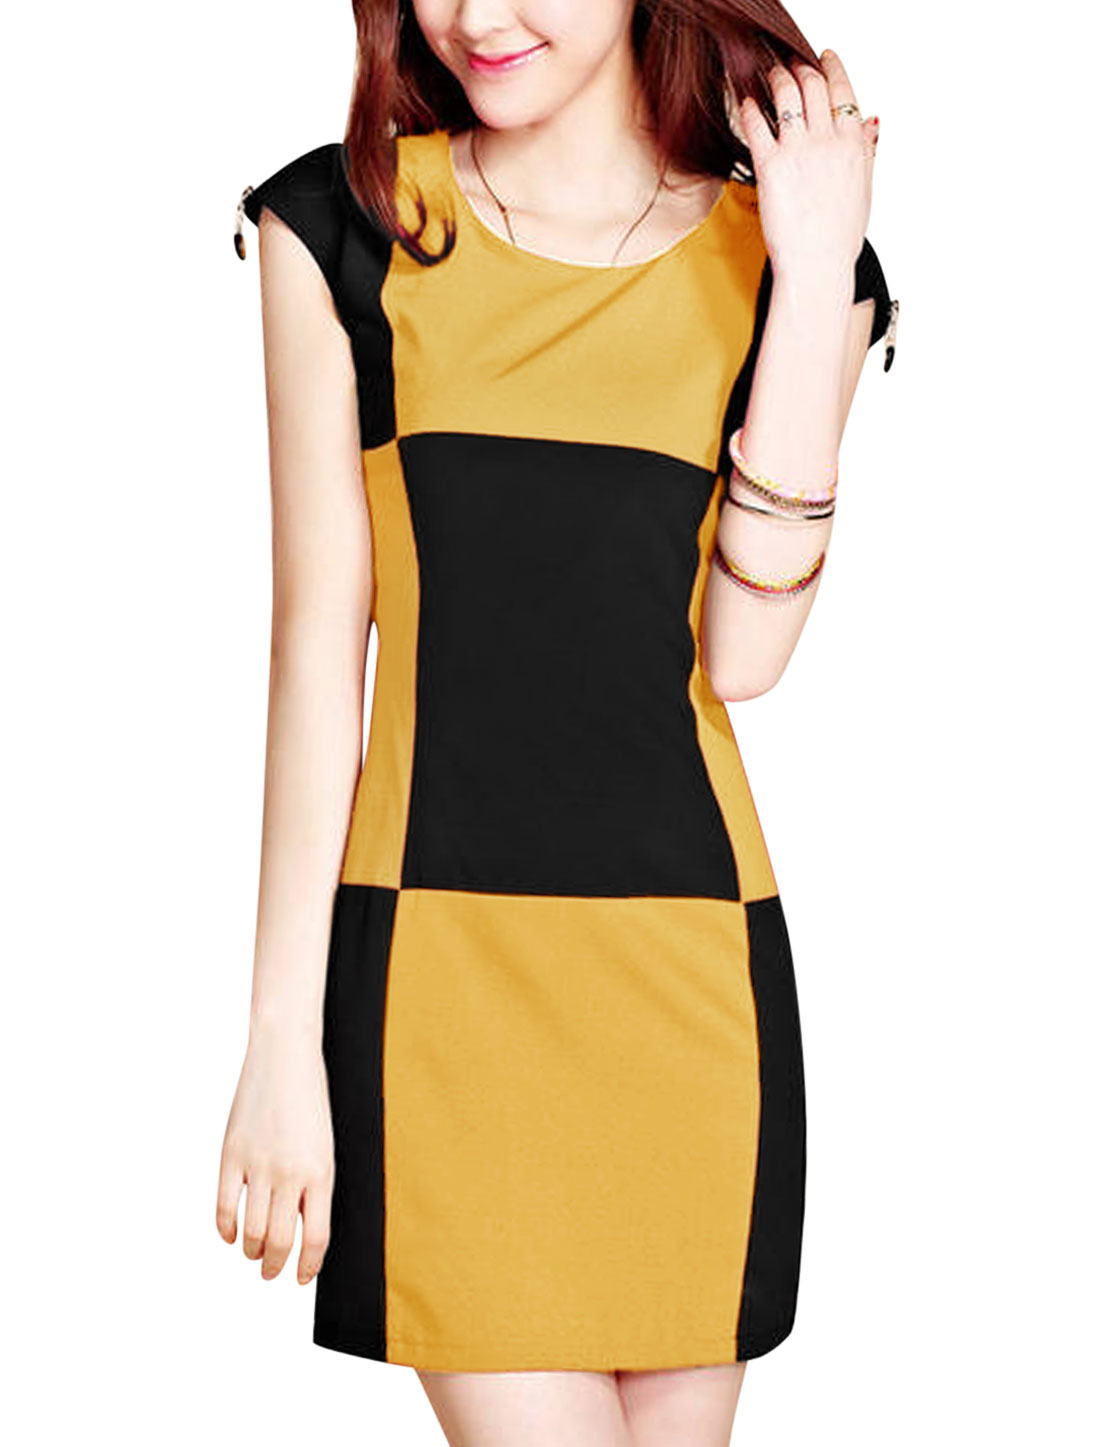 Lady Cap Sleeve Zipped Shoulder Check Colorblock Sheath Dress Black Yellow M